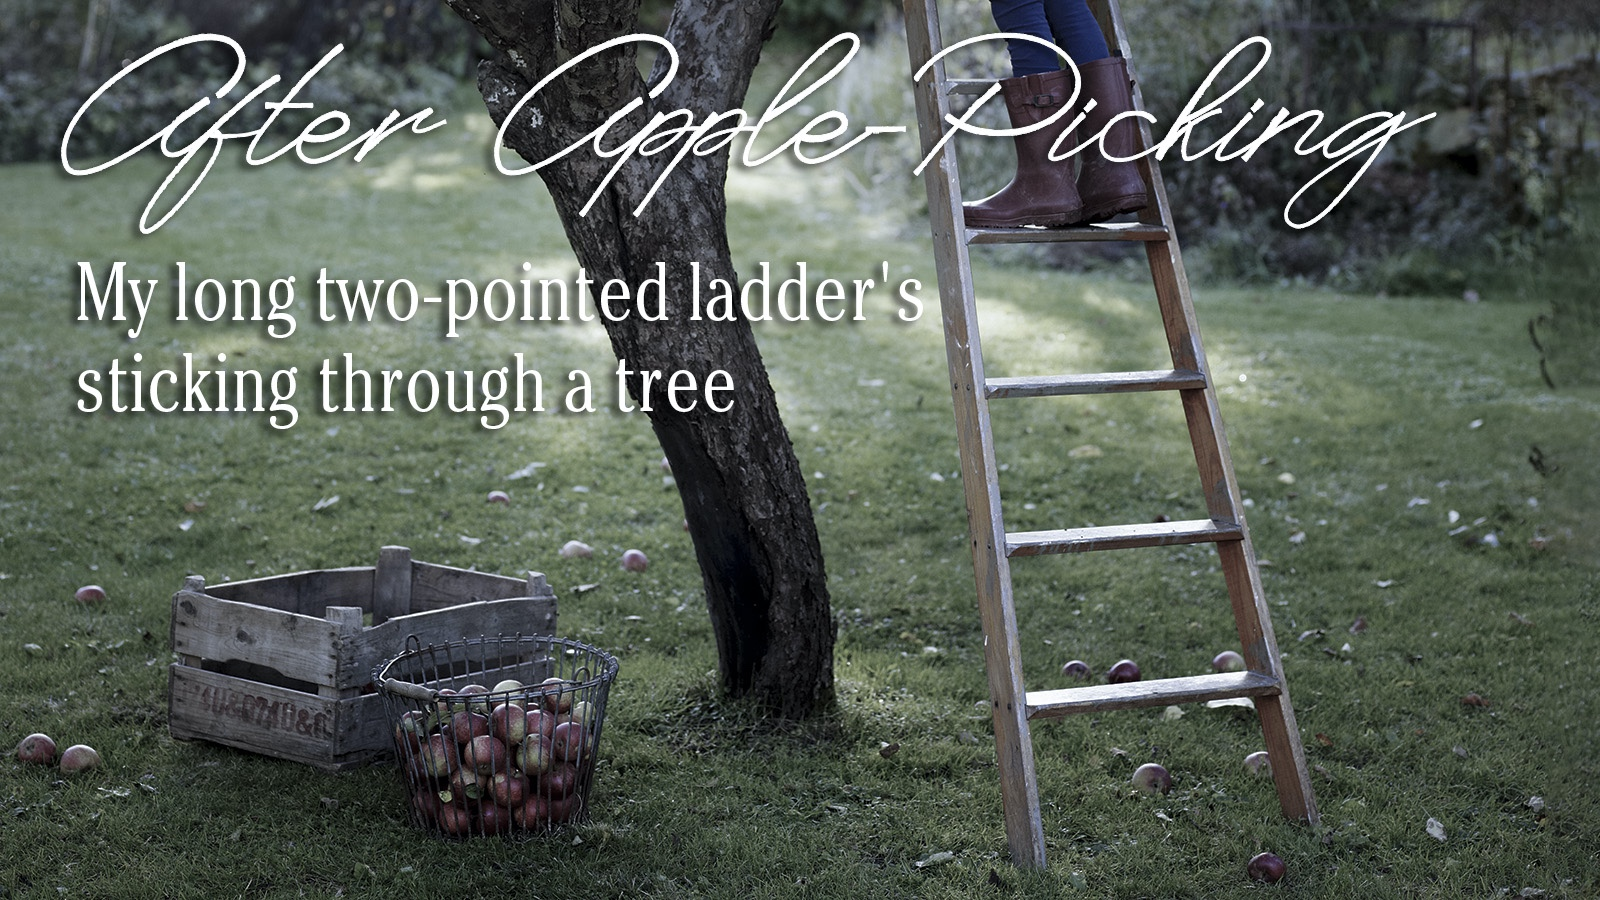 poem Robert Frost After Apple-Picking